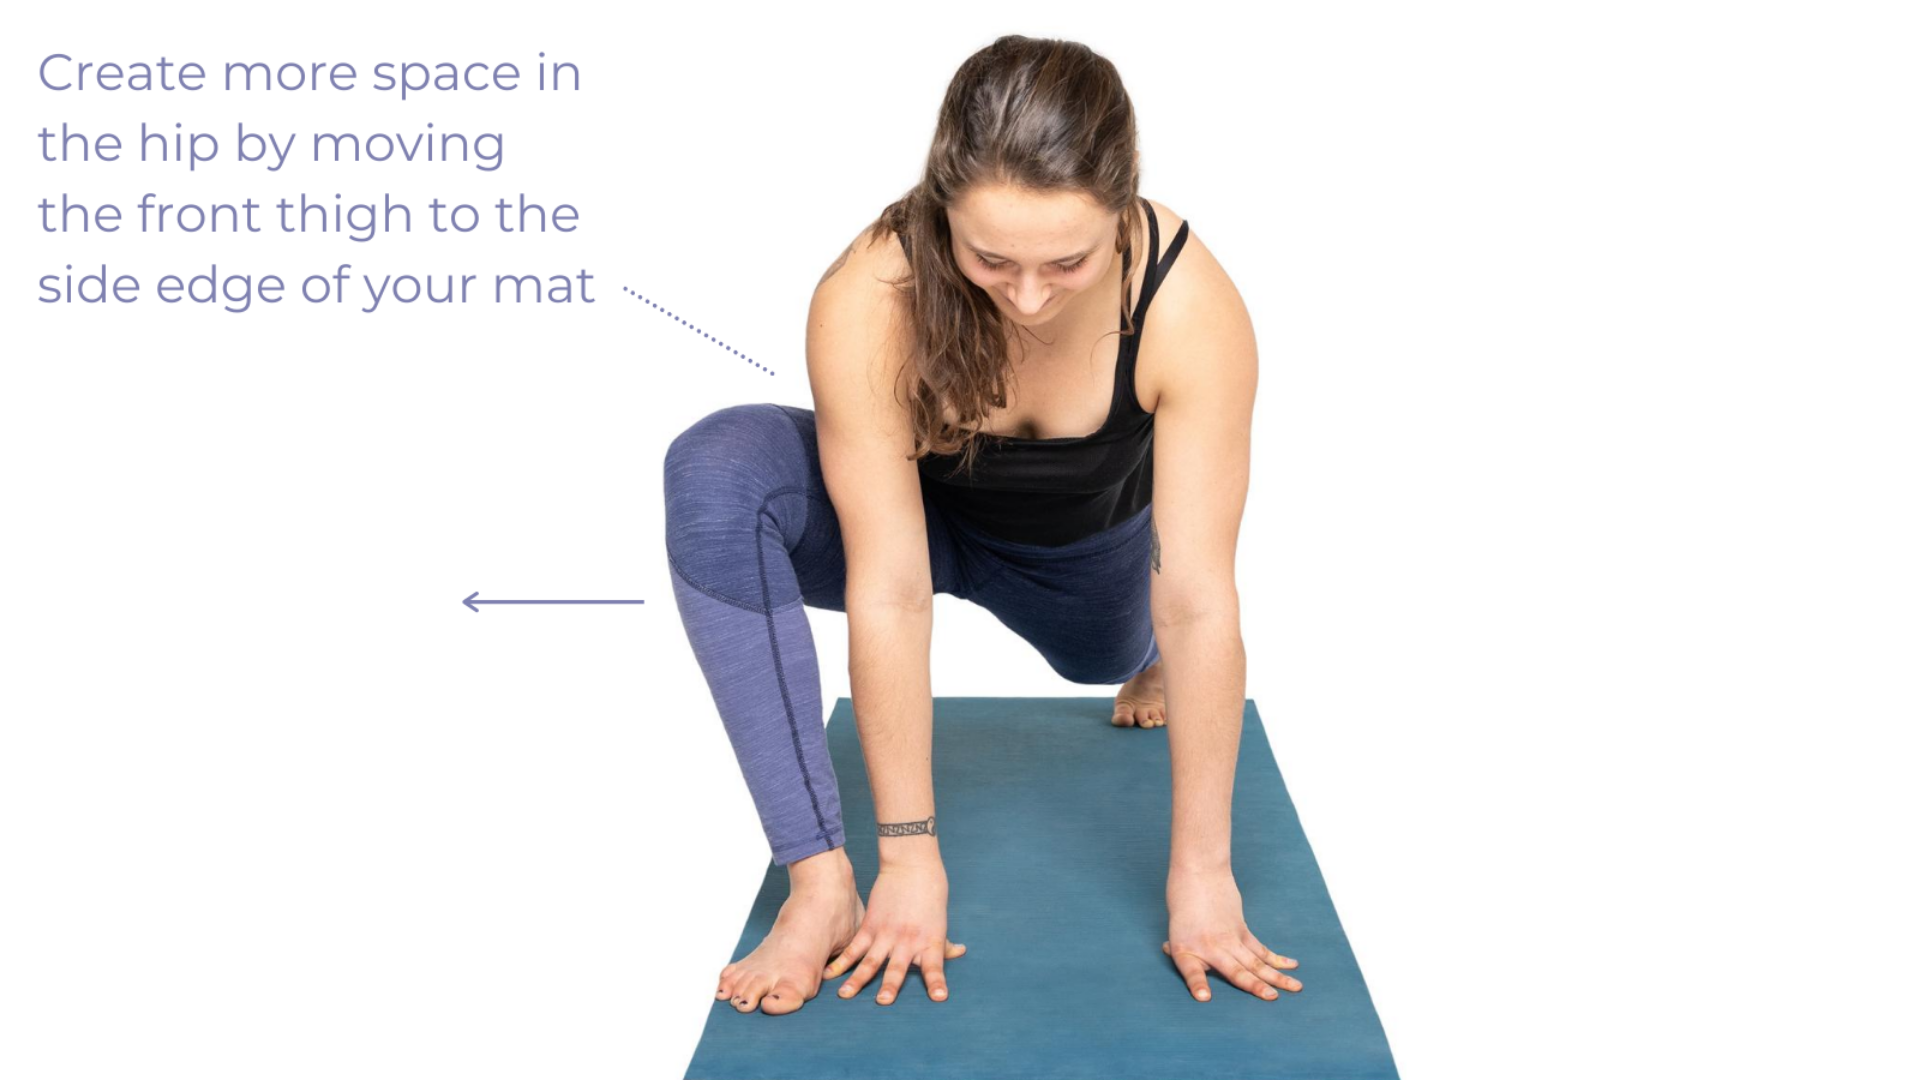 How to angle your toes while practicing Lizard Pose (Utthan Pristhasana prep